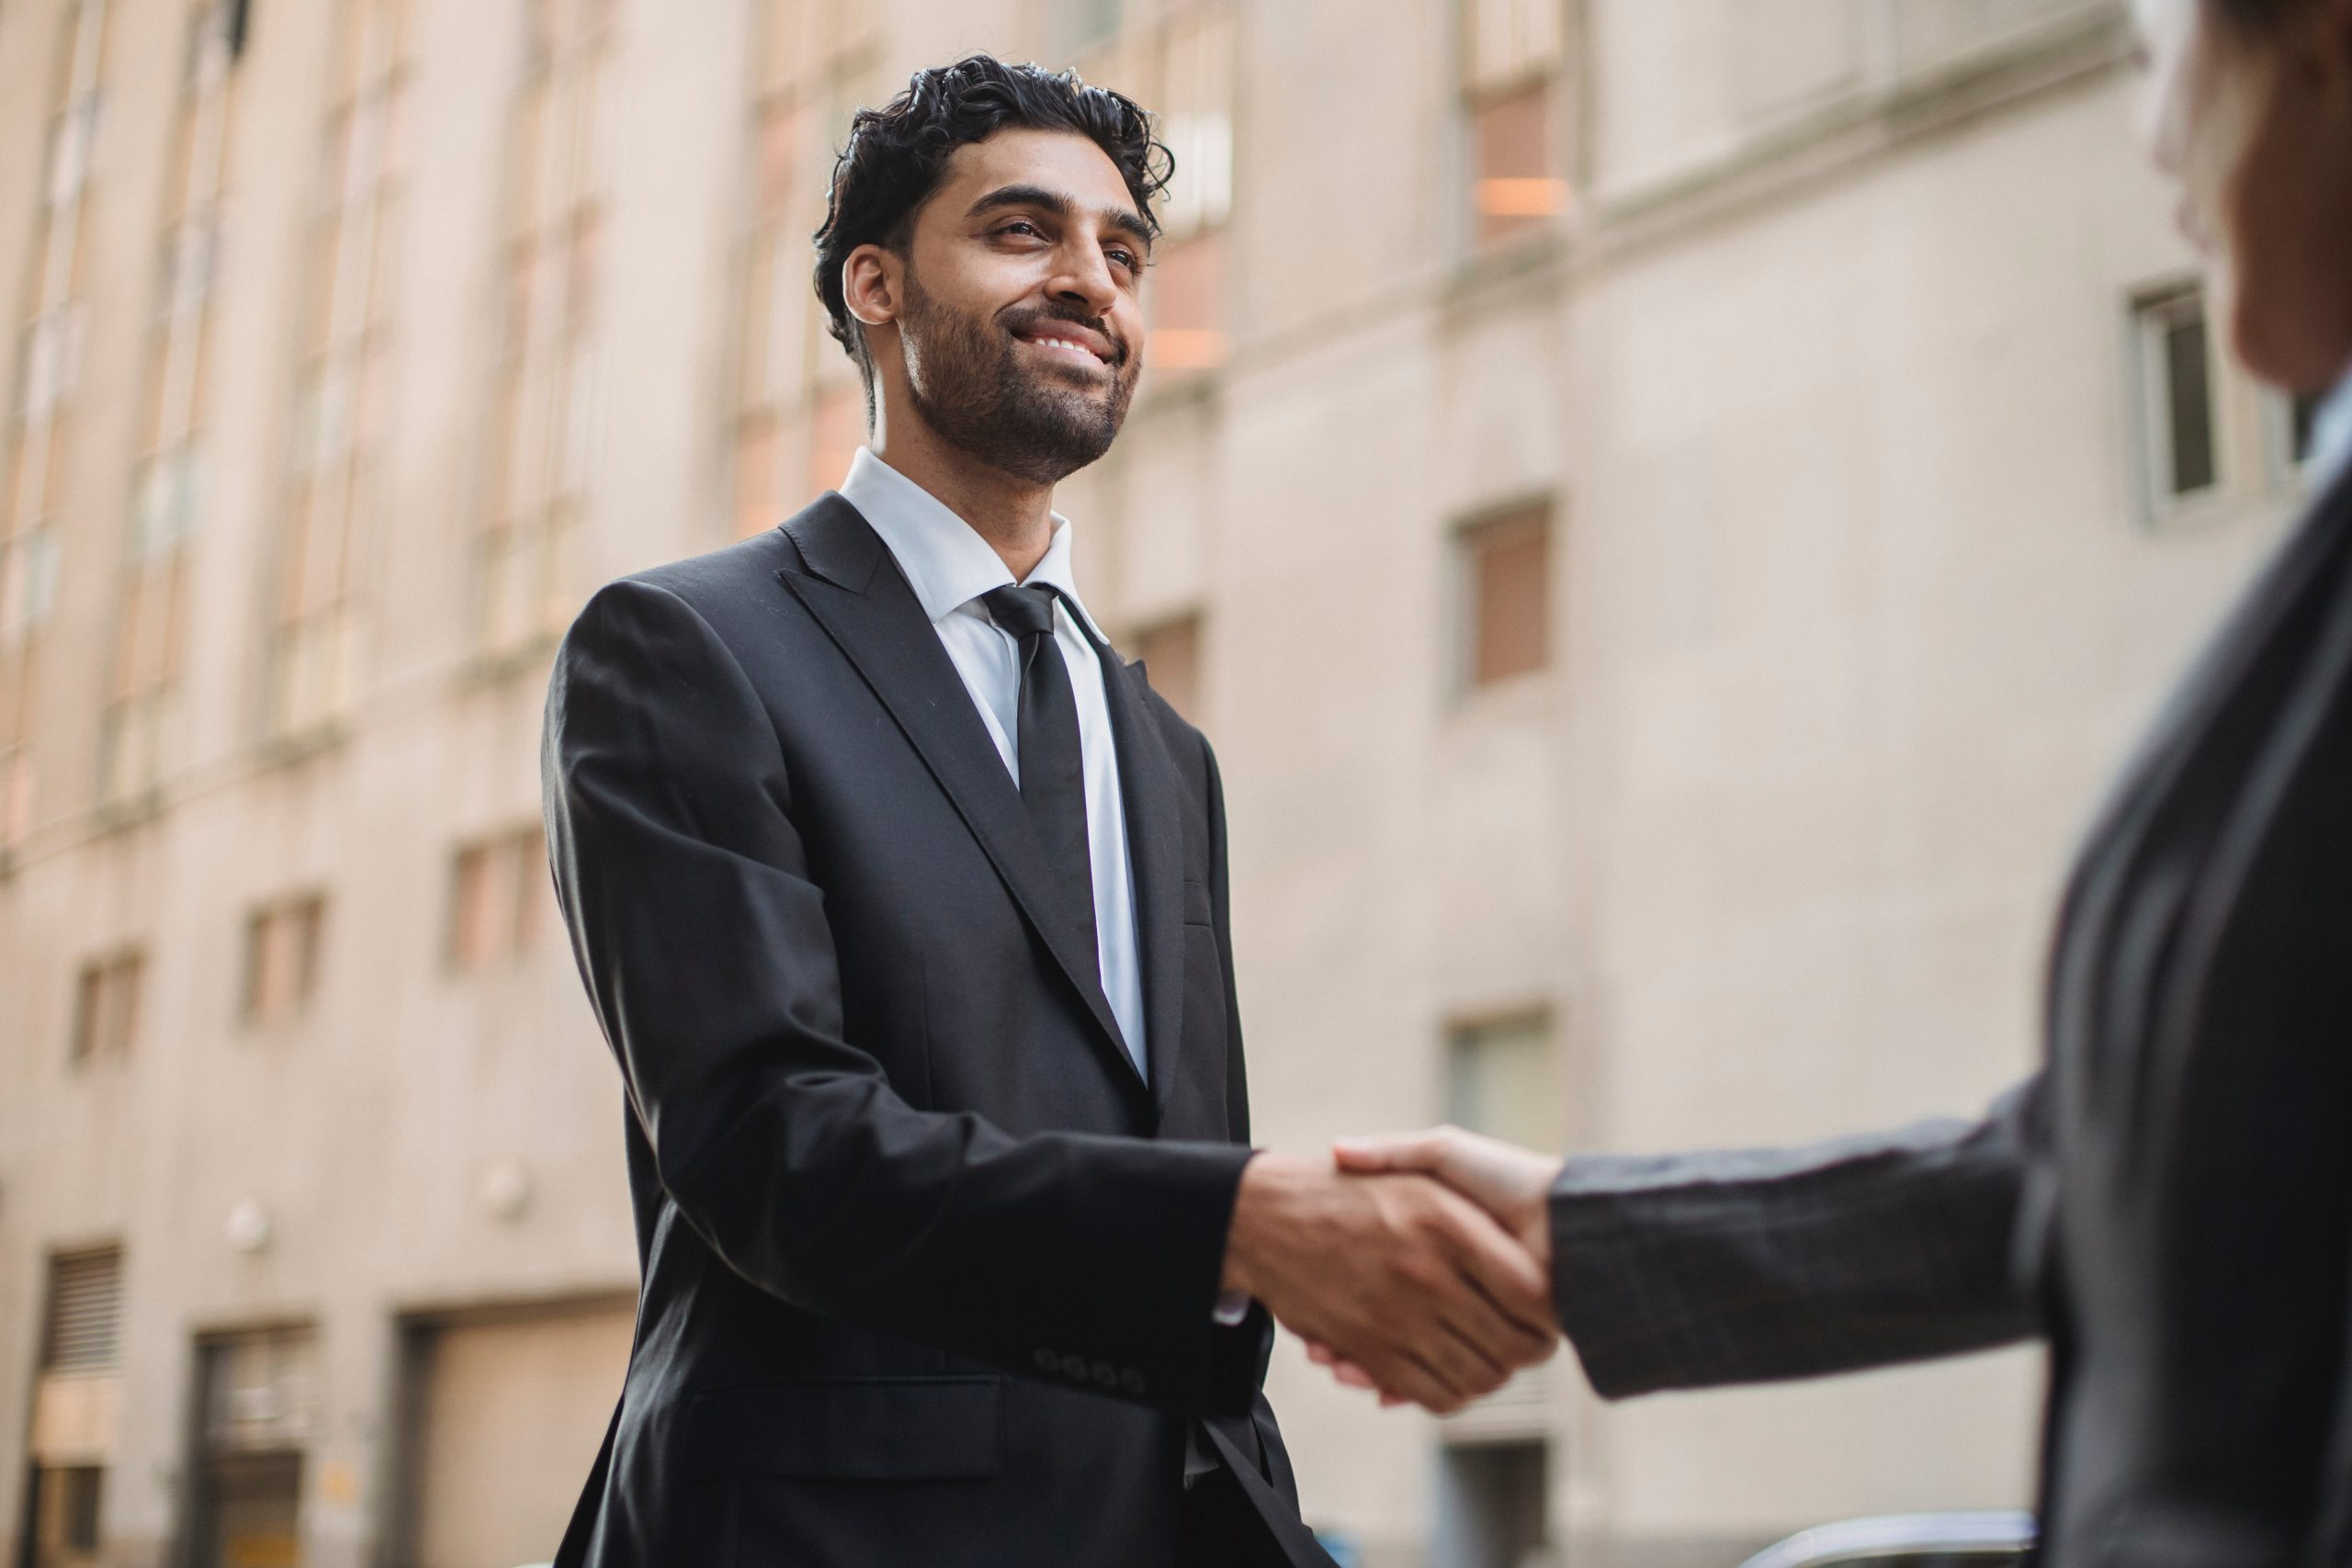 Business man in a suit shaking the hand of a colleague